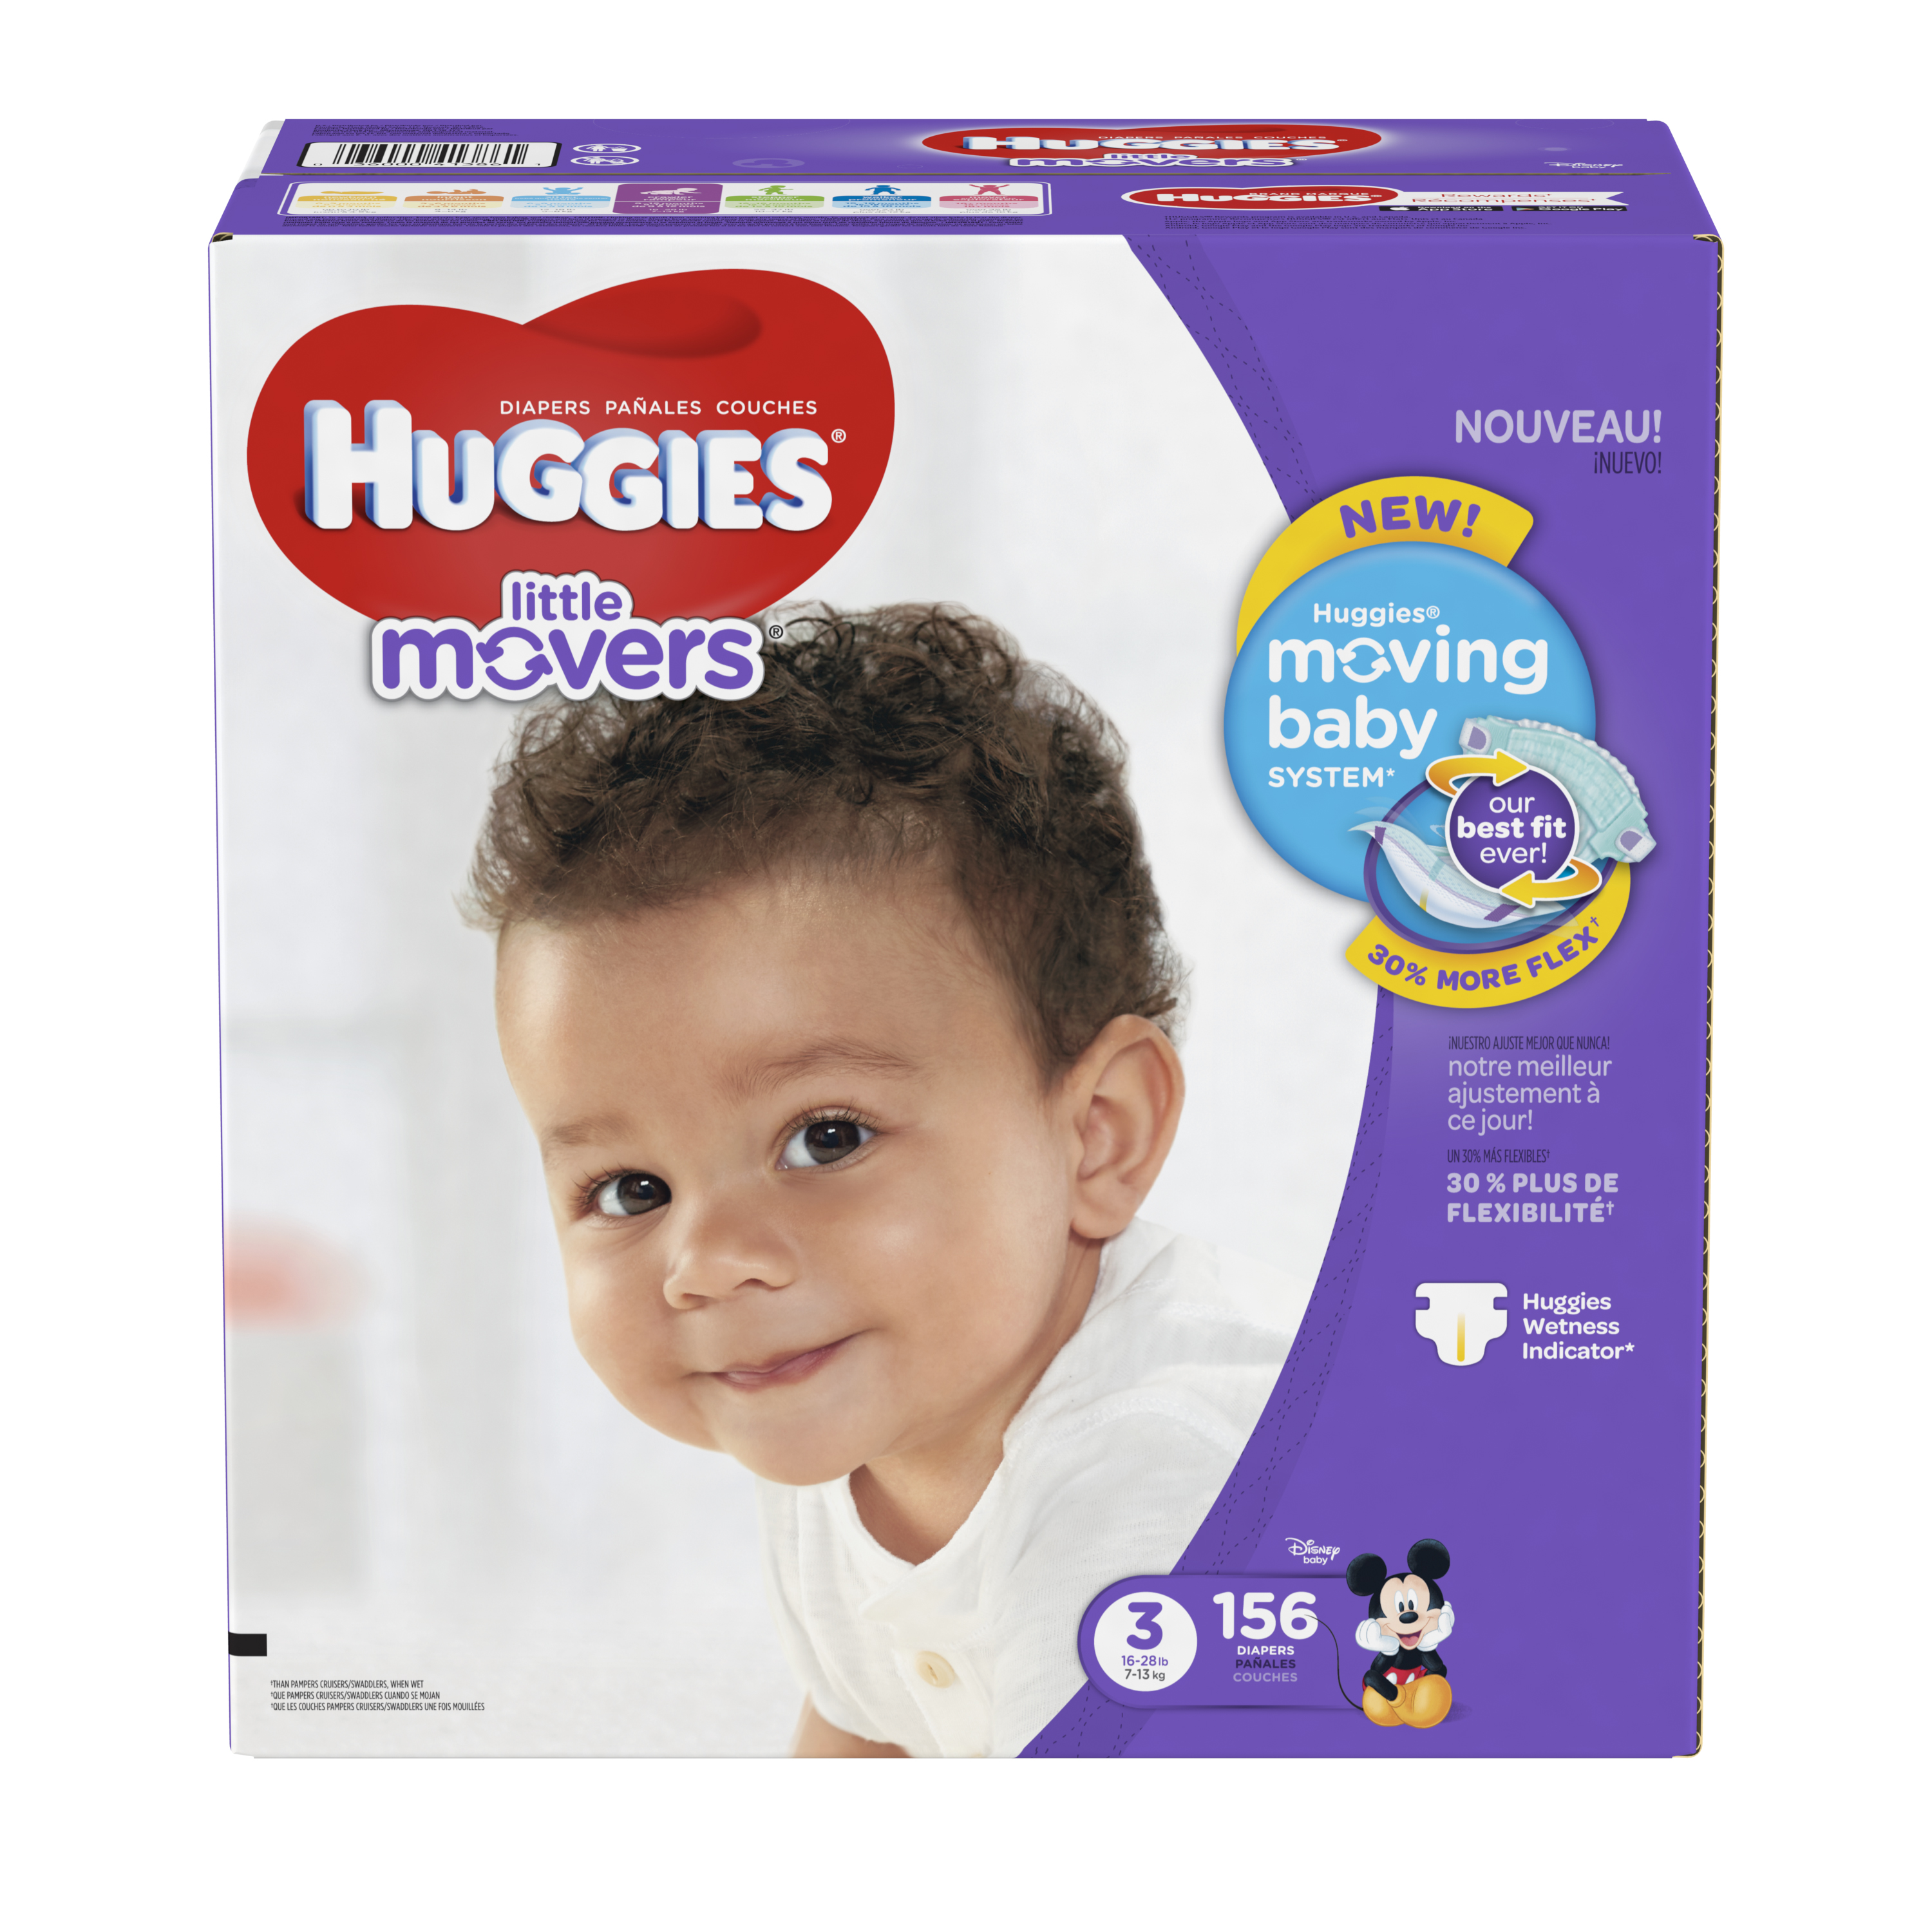 HUGGIES Little Movers Diapers, Size 3, 156 Ct